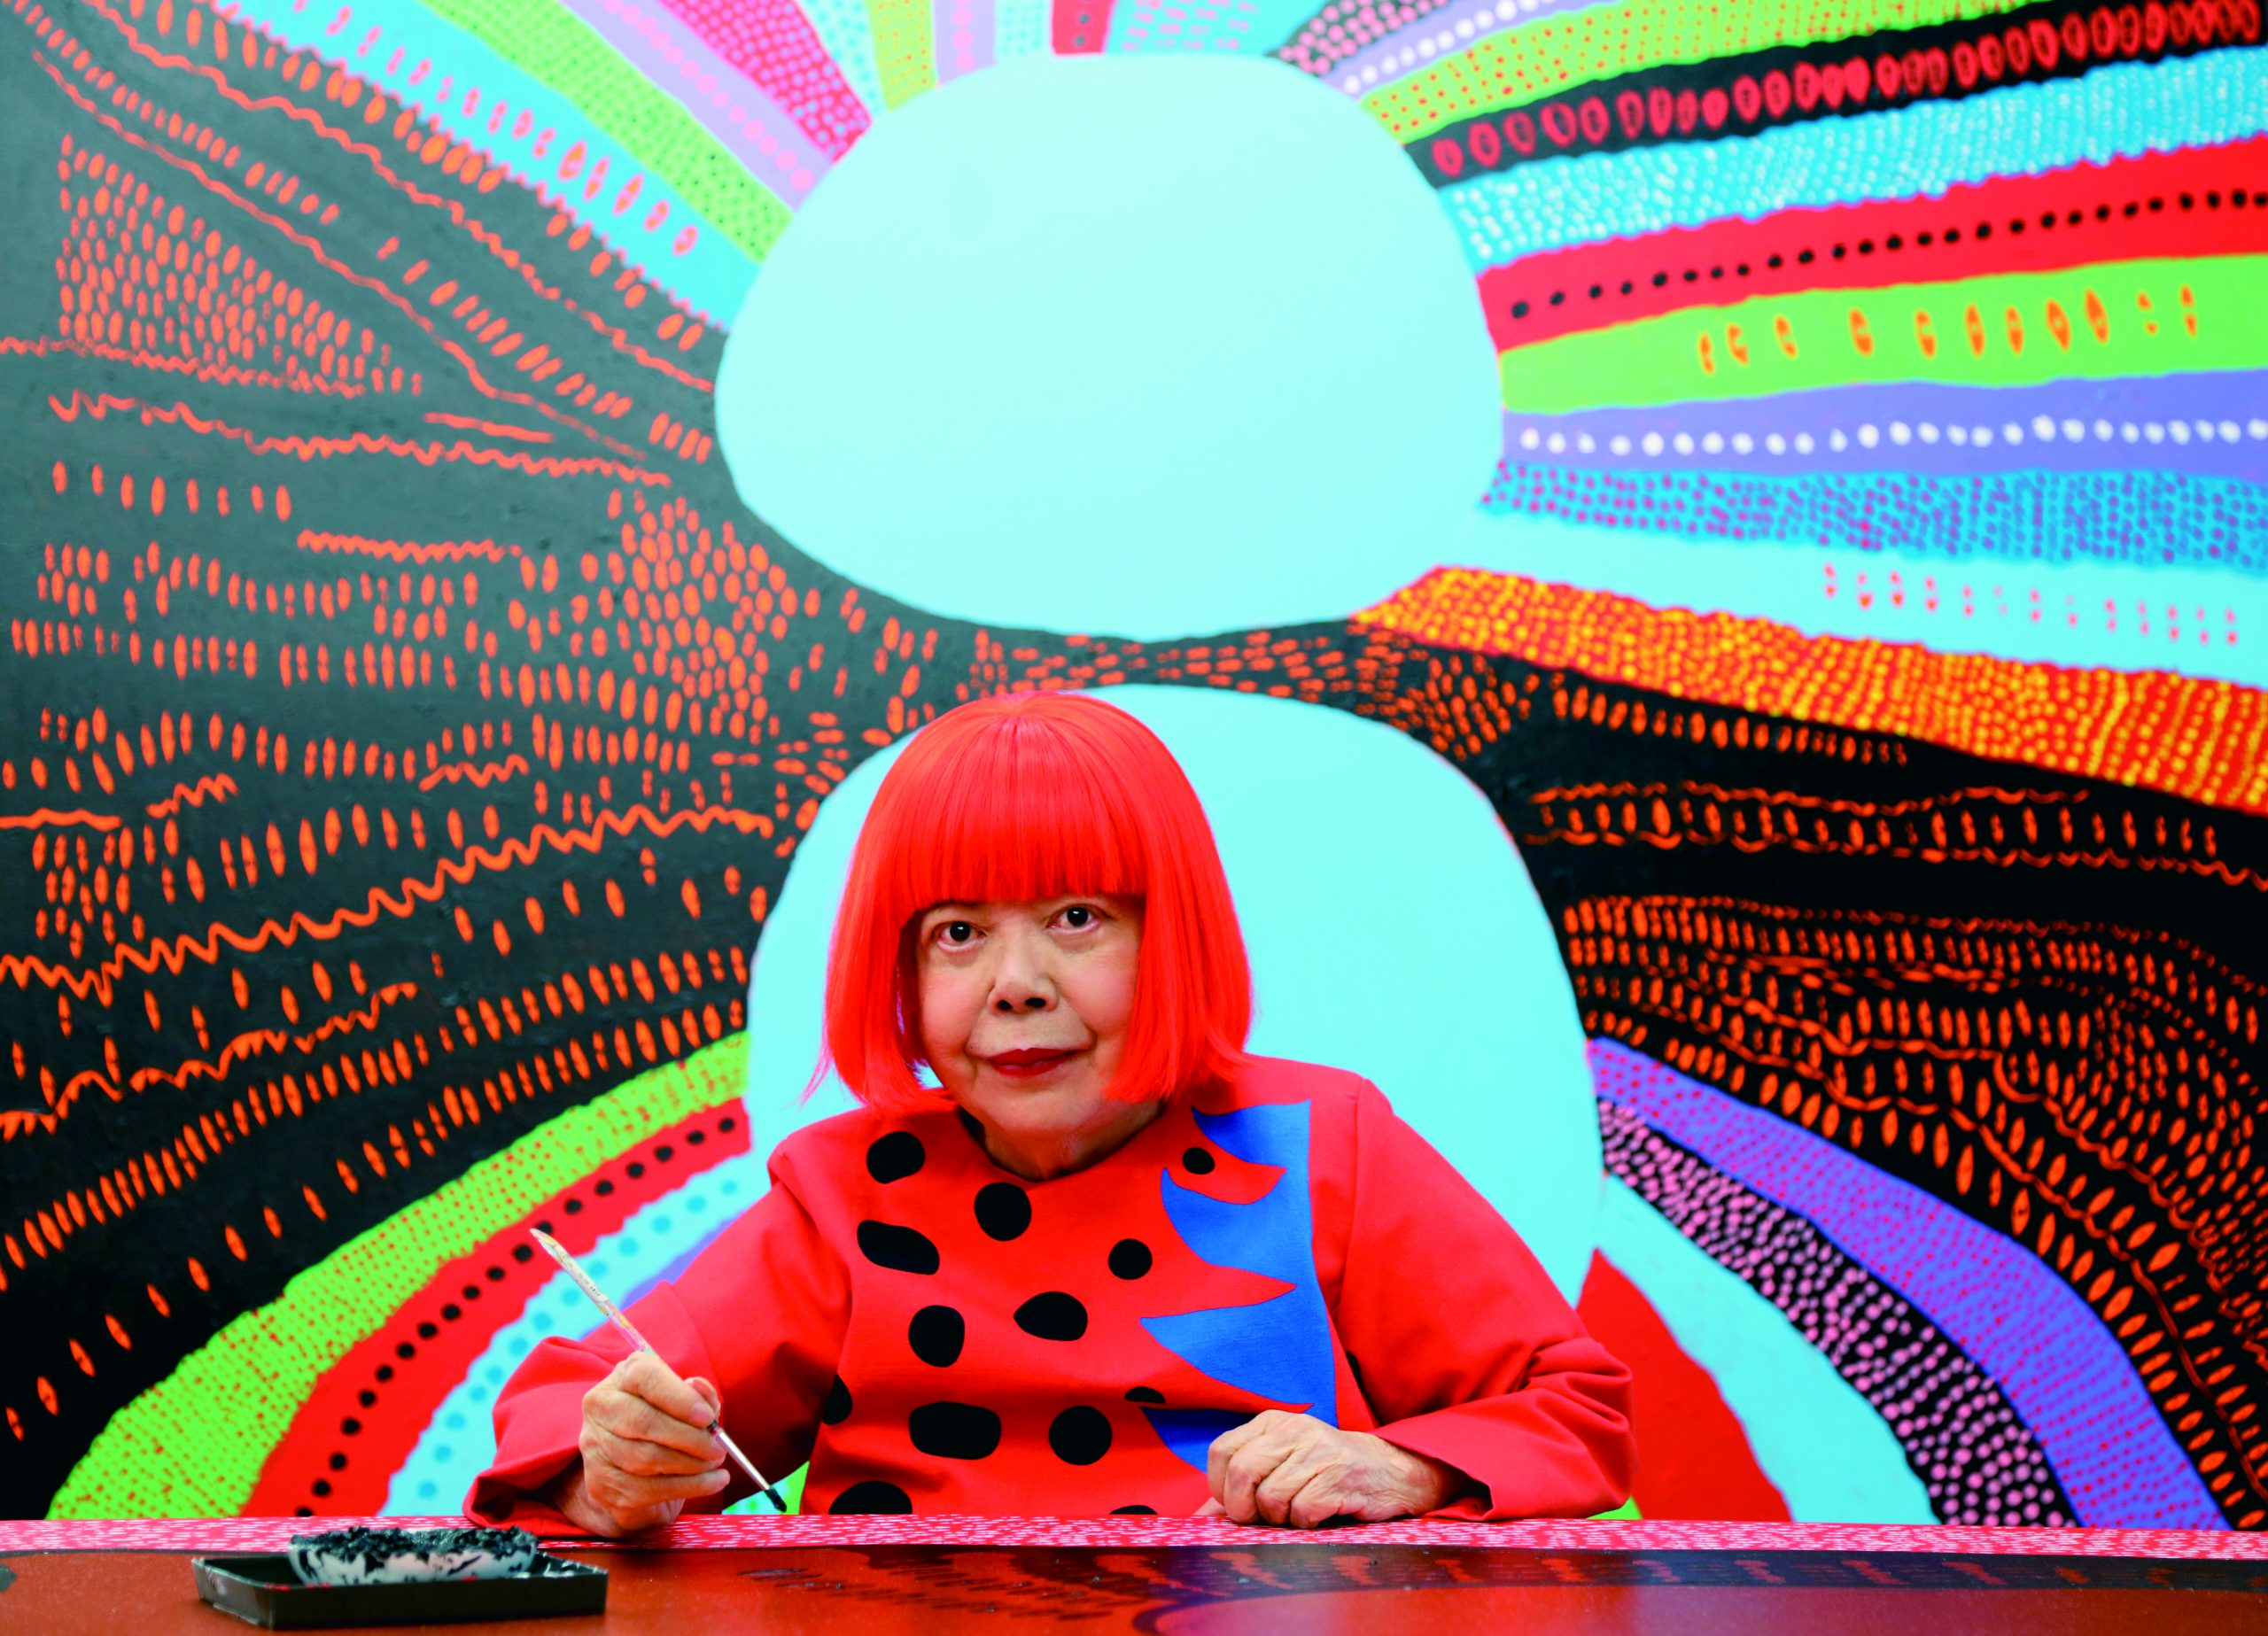 Portrait of Yayoi Kusama sitting in front of a colorful painting.